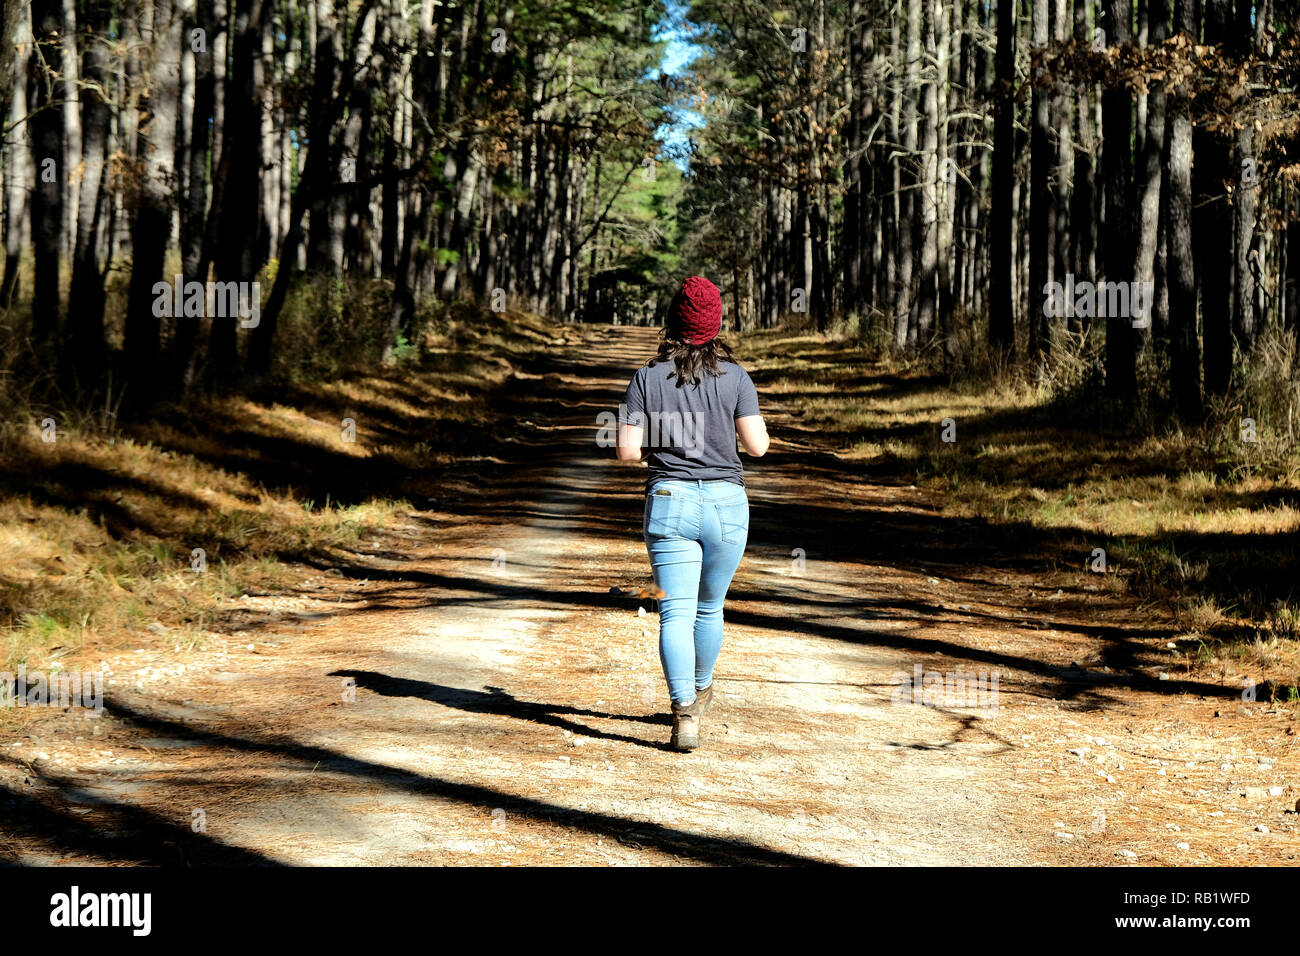 Young female hiker walking alone on a service road / trail in the Sam Houston National Forest in Texas. - Stock Image